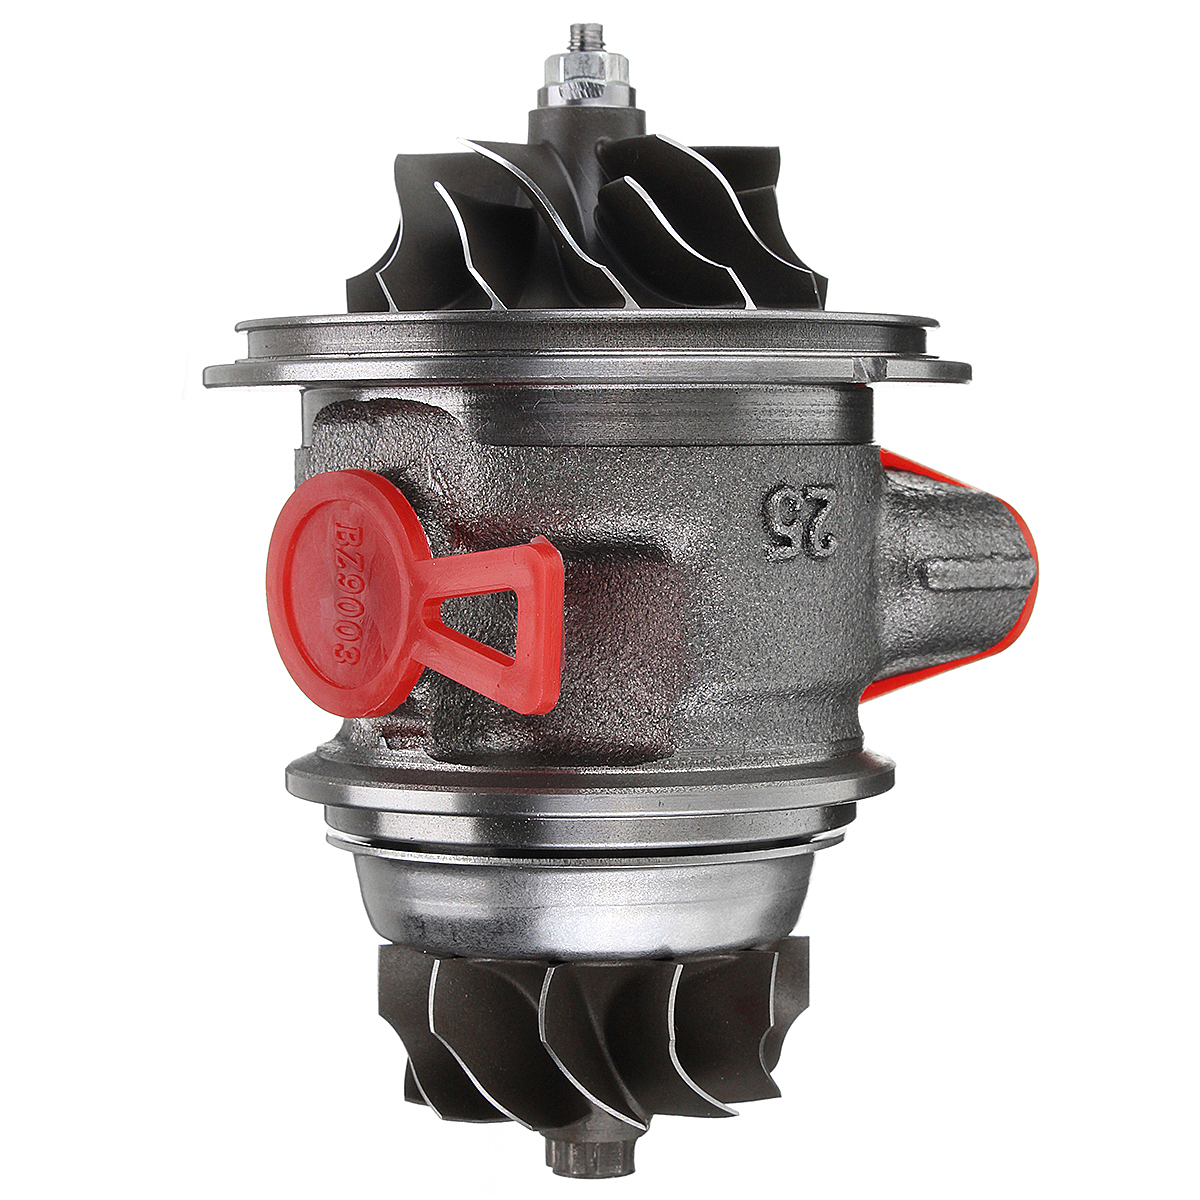 turbocharger turbo cartridge core for citroen 1 6 hdi 90bhp td025 sale sold out. Black Bedroom Furniture Sets. Home Design Ideas